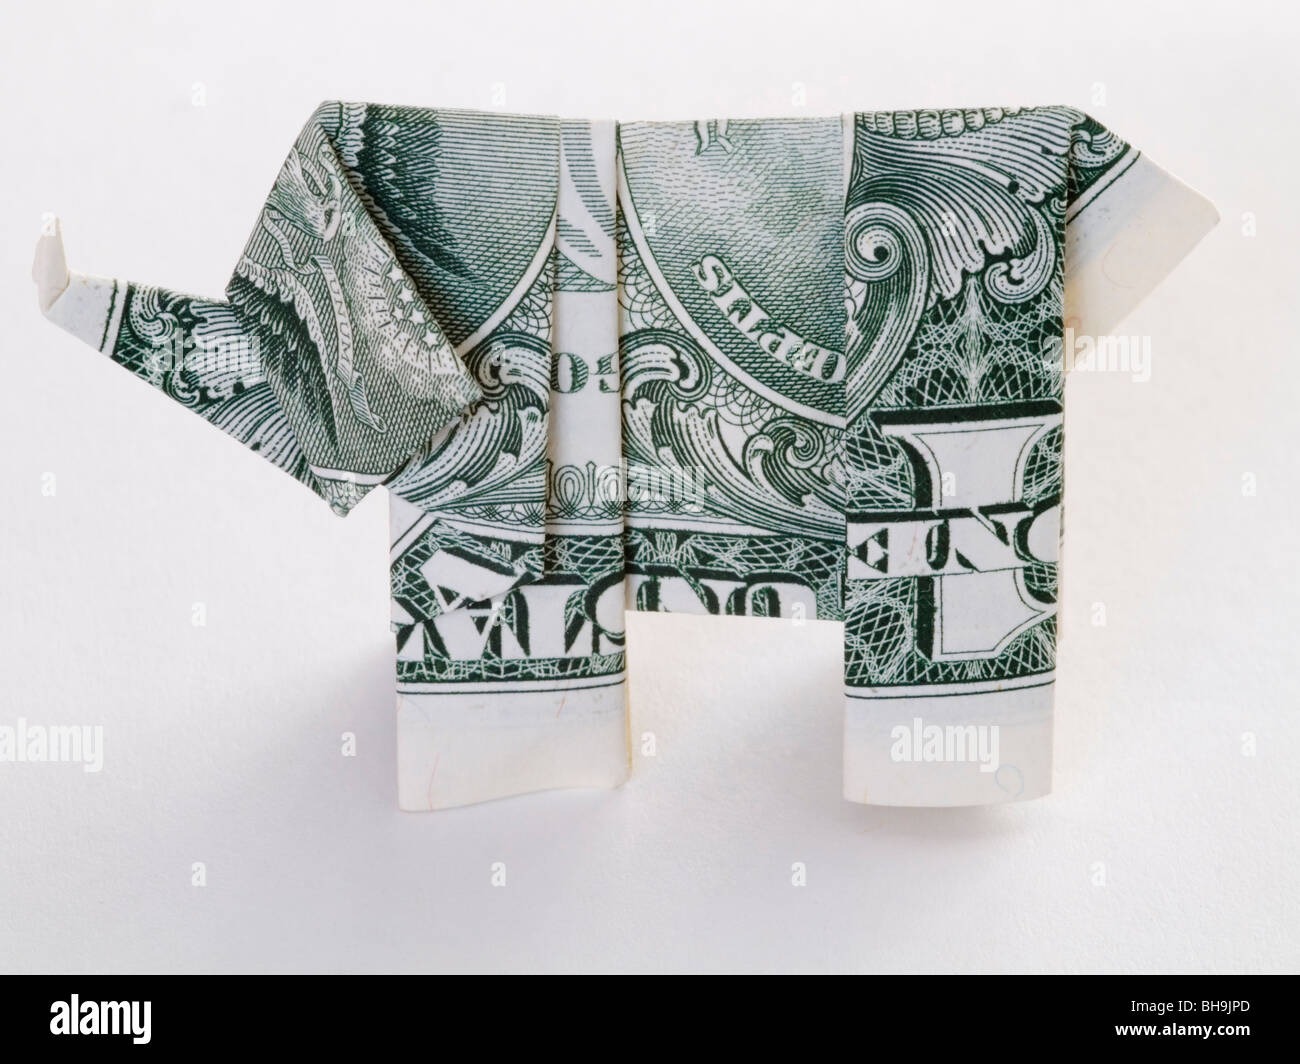 How To Make A Dollar Bill origami elephant | Origami elefant, Dollarschein  origami, Geld falten | 1065x1300